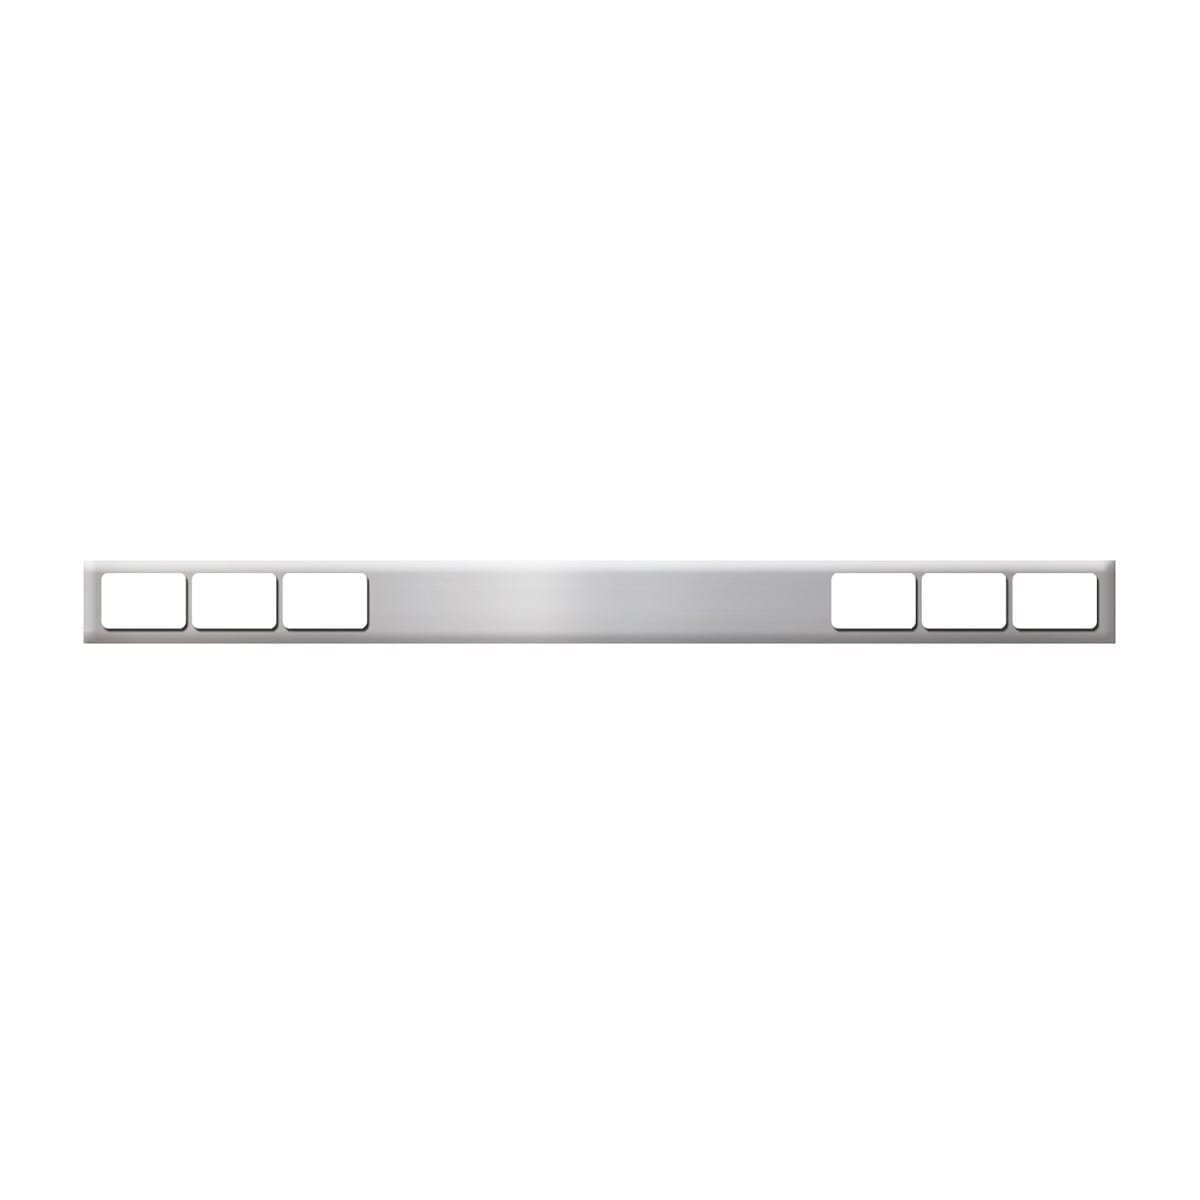 CHROME ONE PIECE REAR LIGHT BARS WITH RECTANGULAR (6) LIGHTS